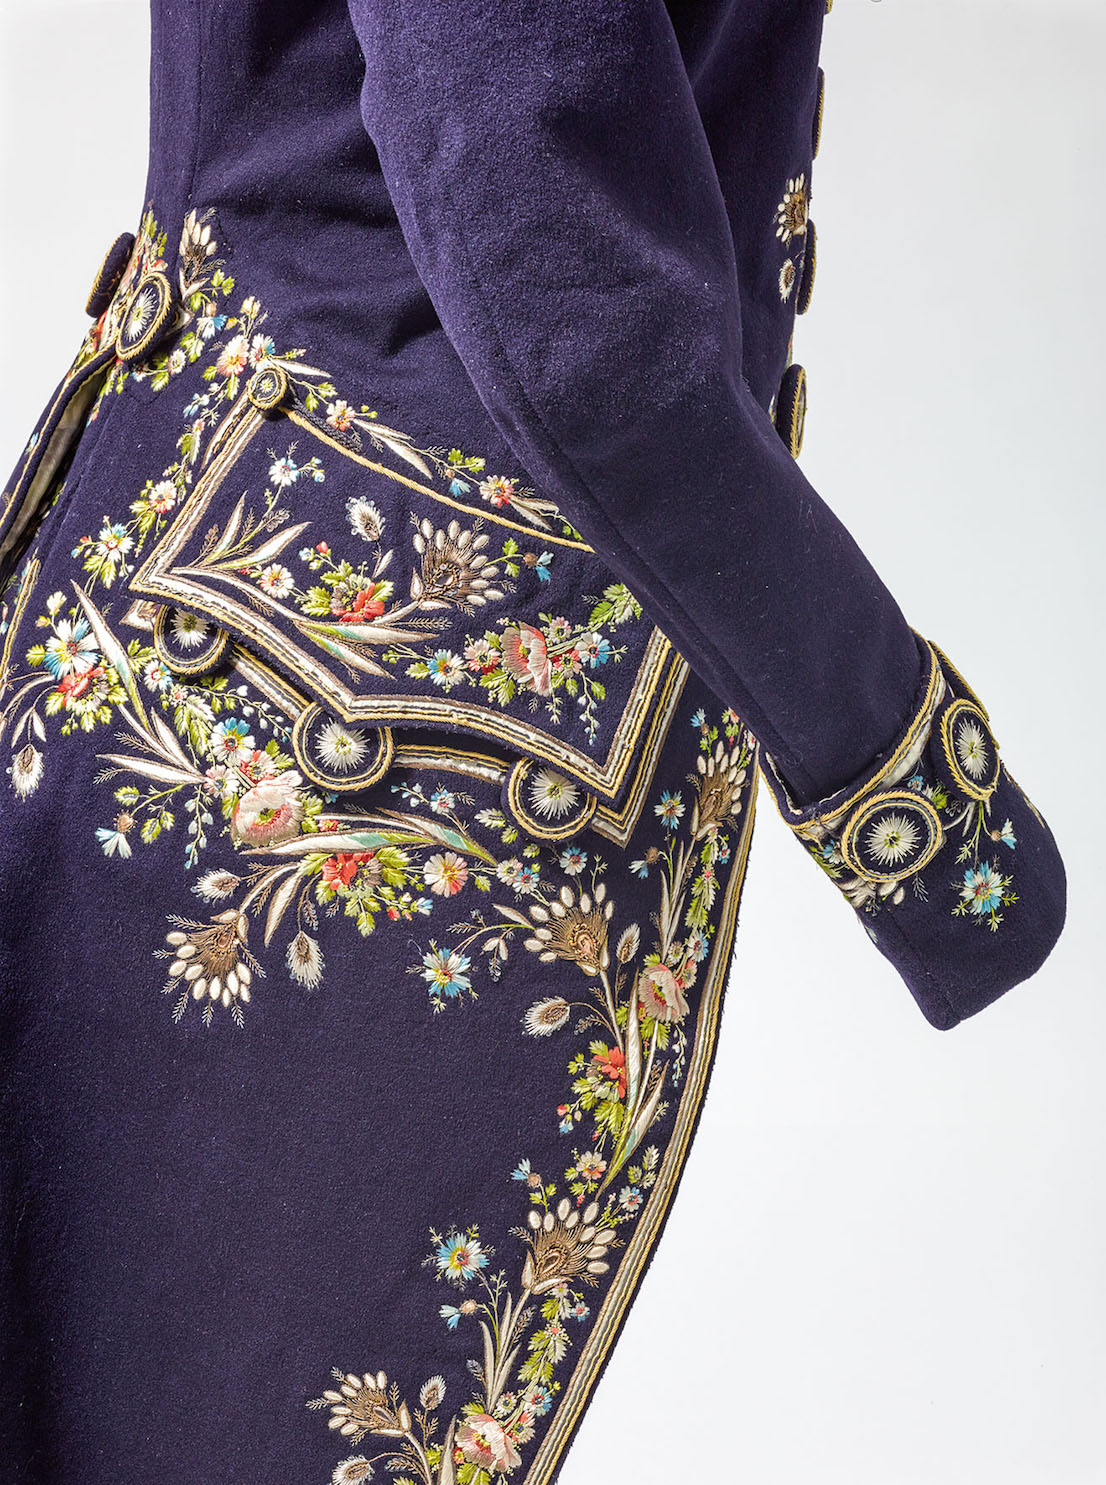 Anonym Men's coat, Vienna, beginning of 19th c. © MAK/Georg Mayer